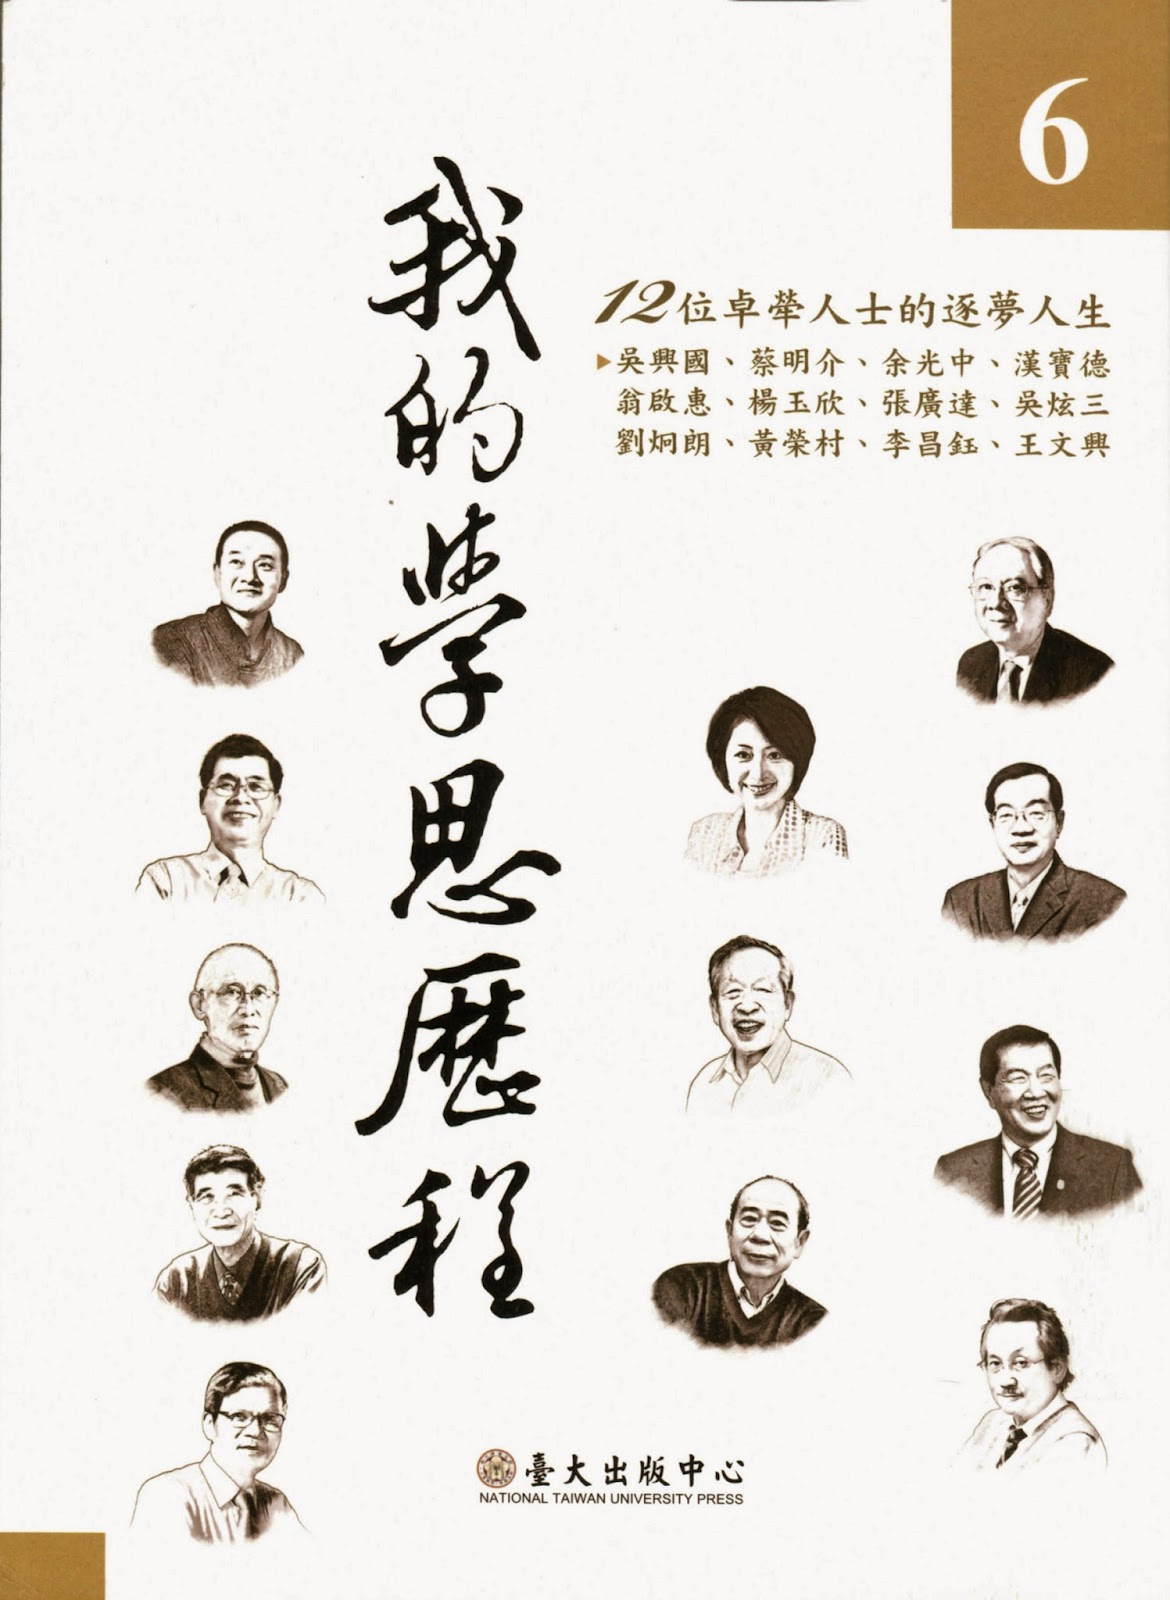 NTU Lectures on the Intellectual and Spiritual Pilgrimage, Vol.6《我的學思歷程6》(2012)